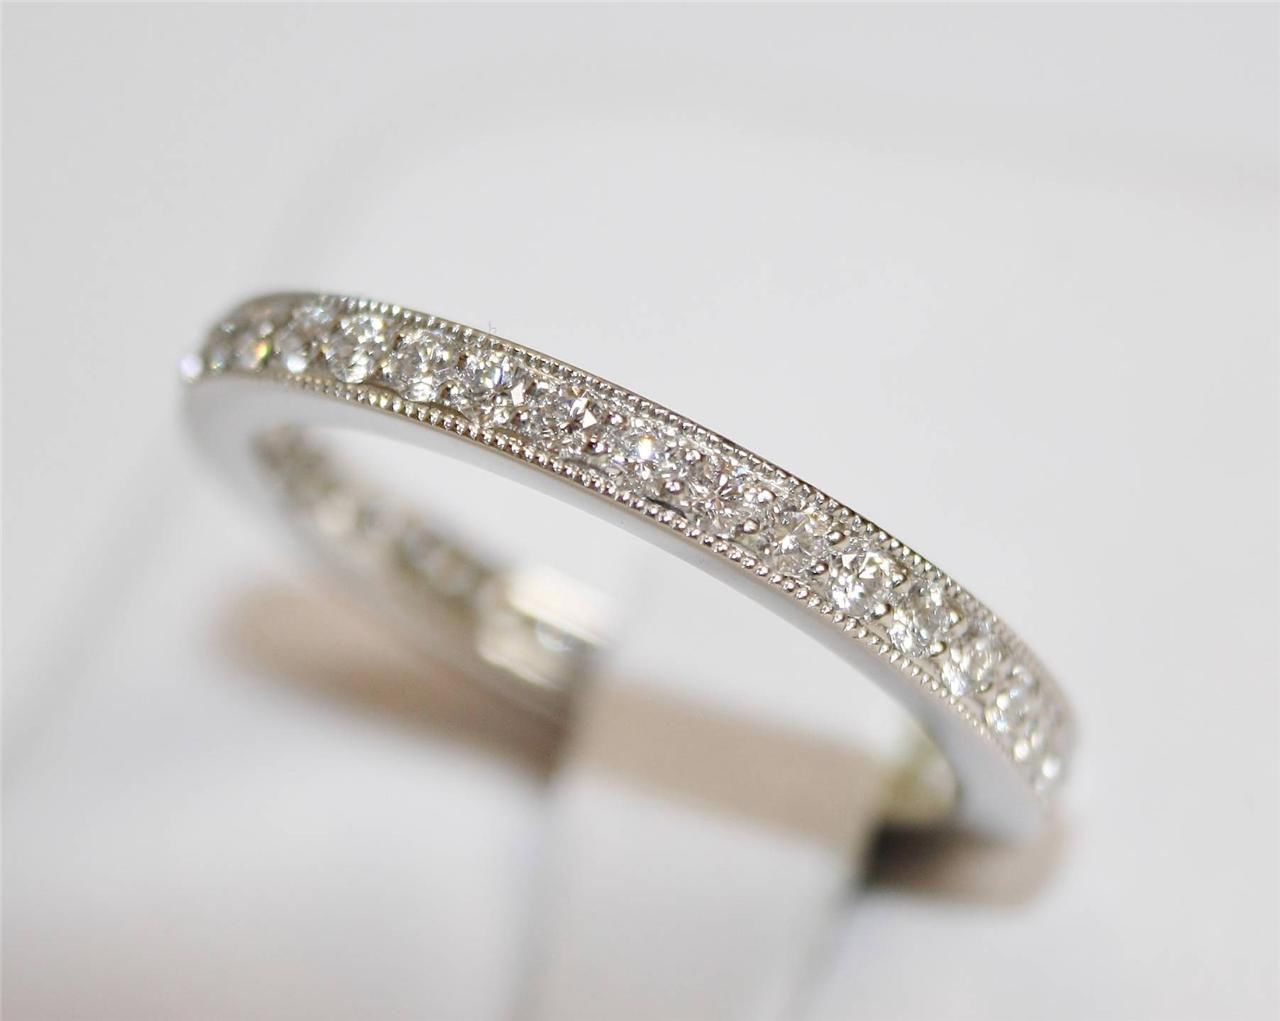 Sell Wedding Rings Used Diamond Jewelry In Denver on oscar heyman diamond rings